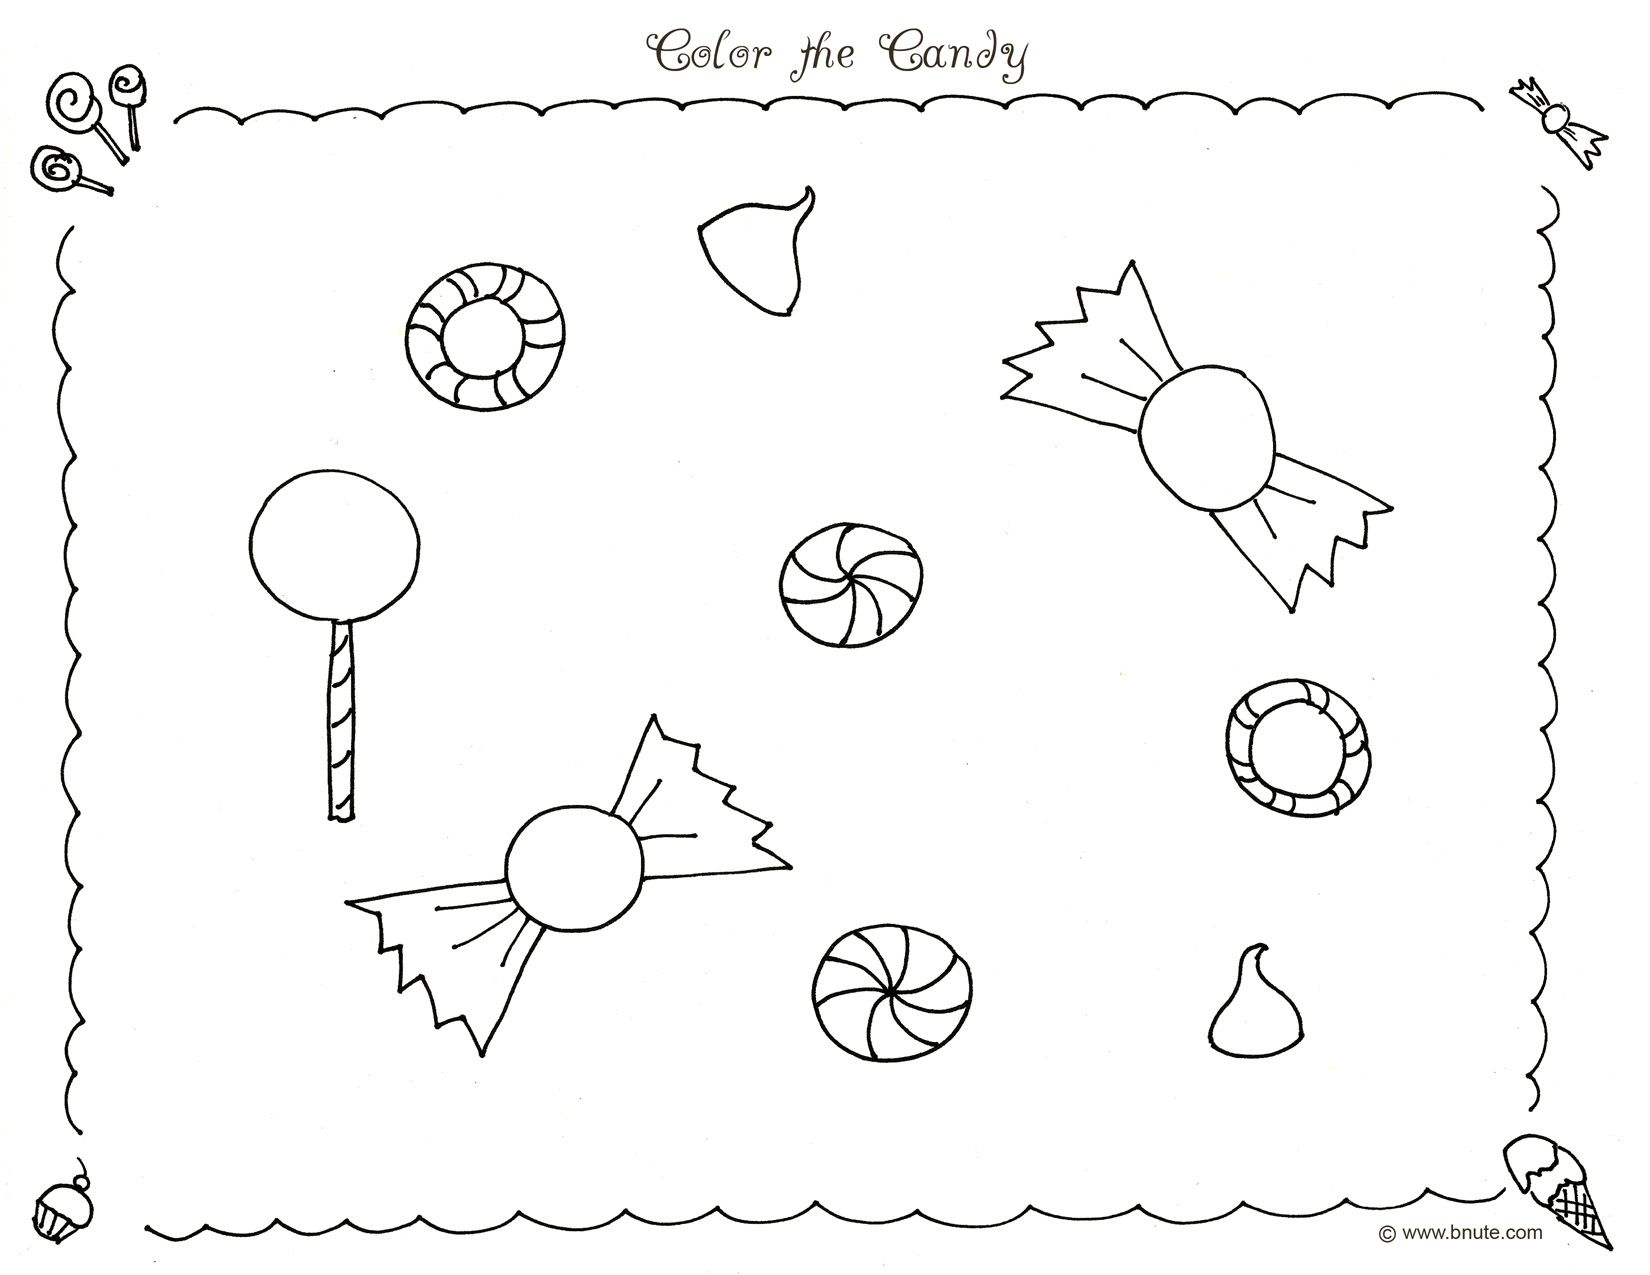 Color the Candy Coloring Page by BNute productions CHARLIE